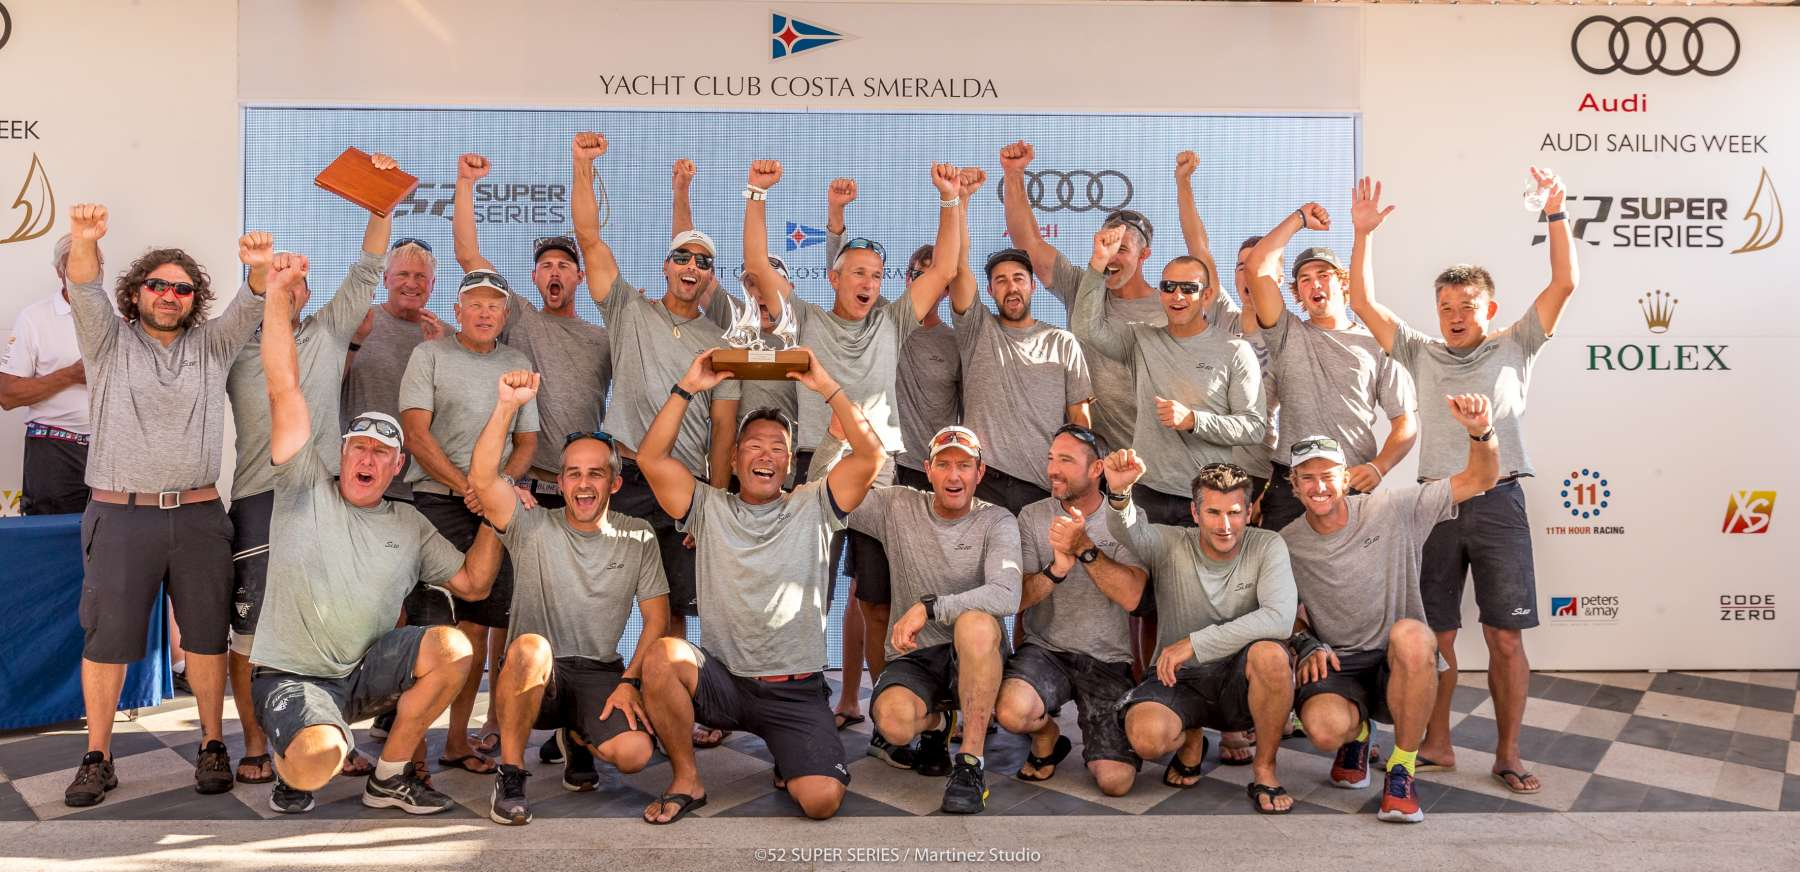 Audi 52 Super Series Sailing Week  - Porto Cervo 2019 - 1